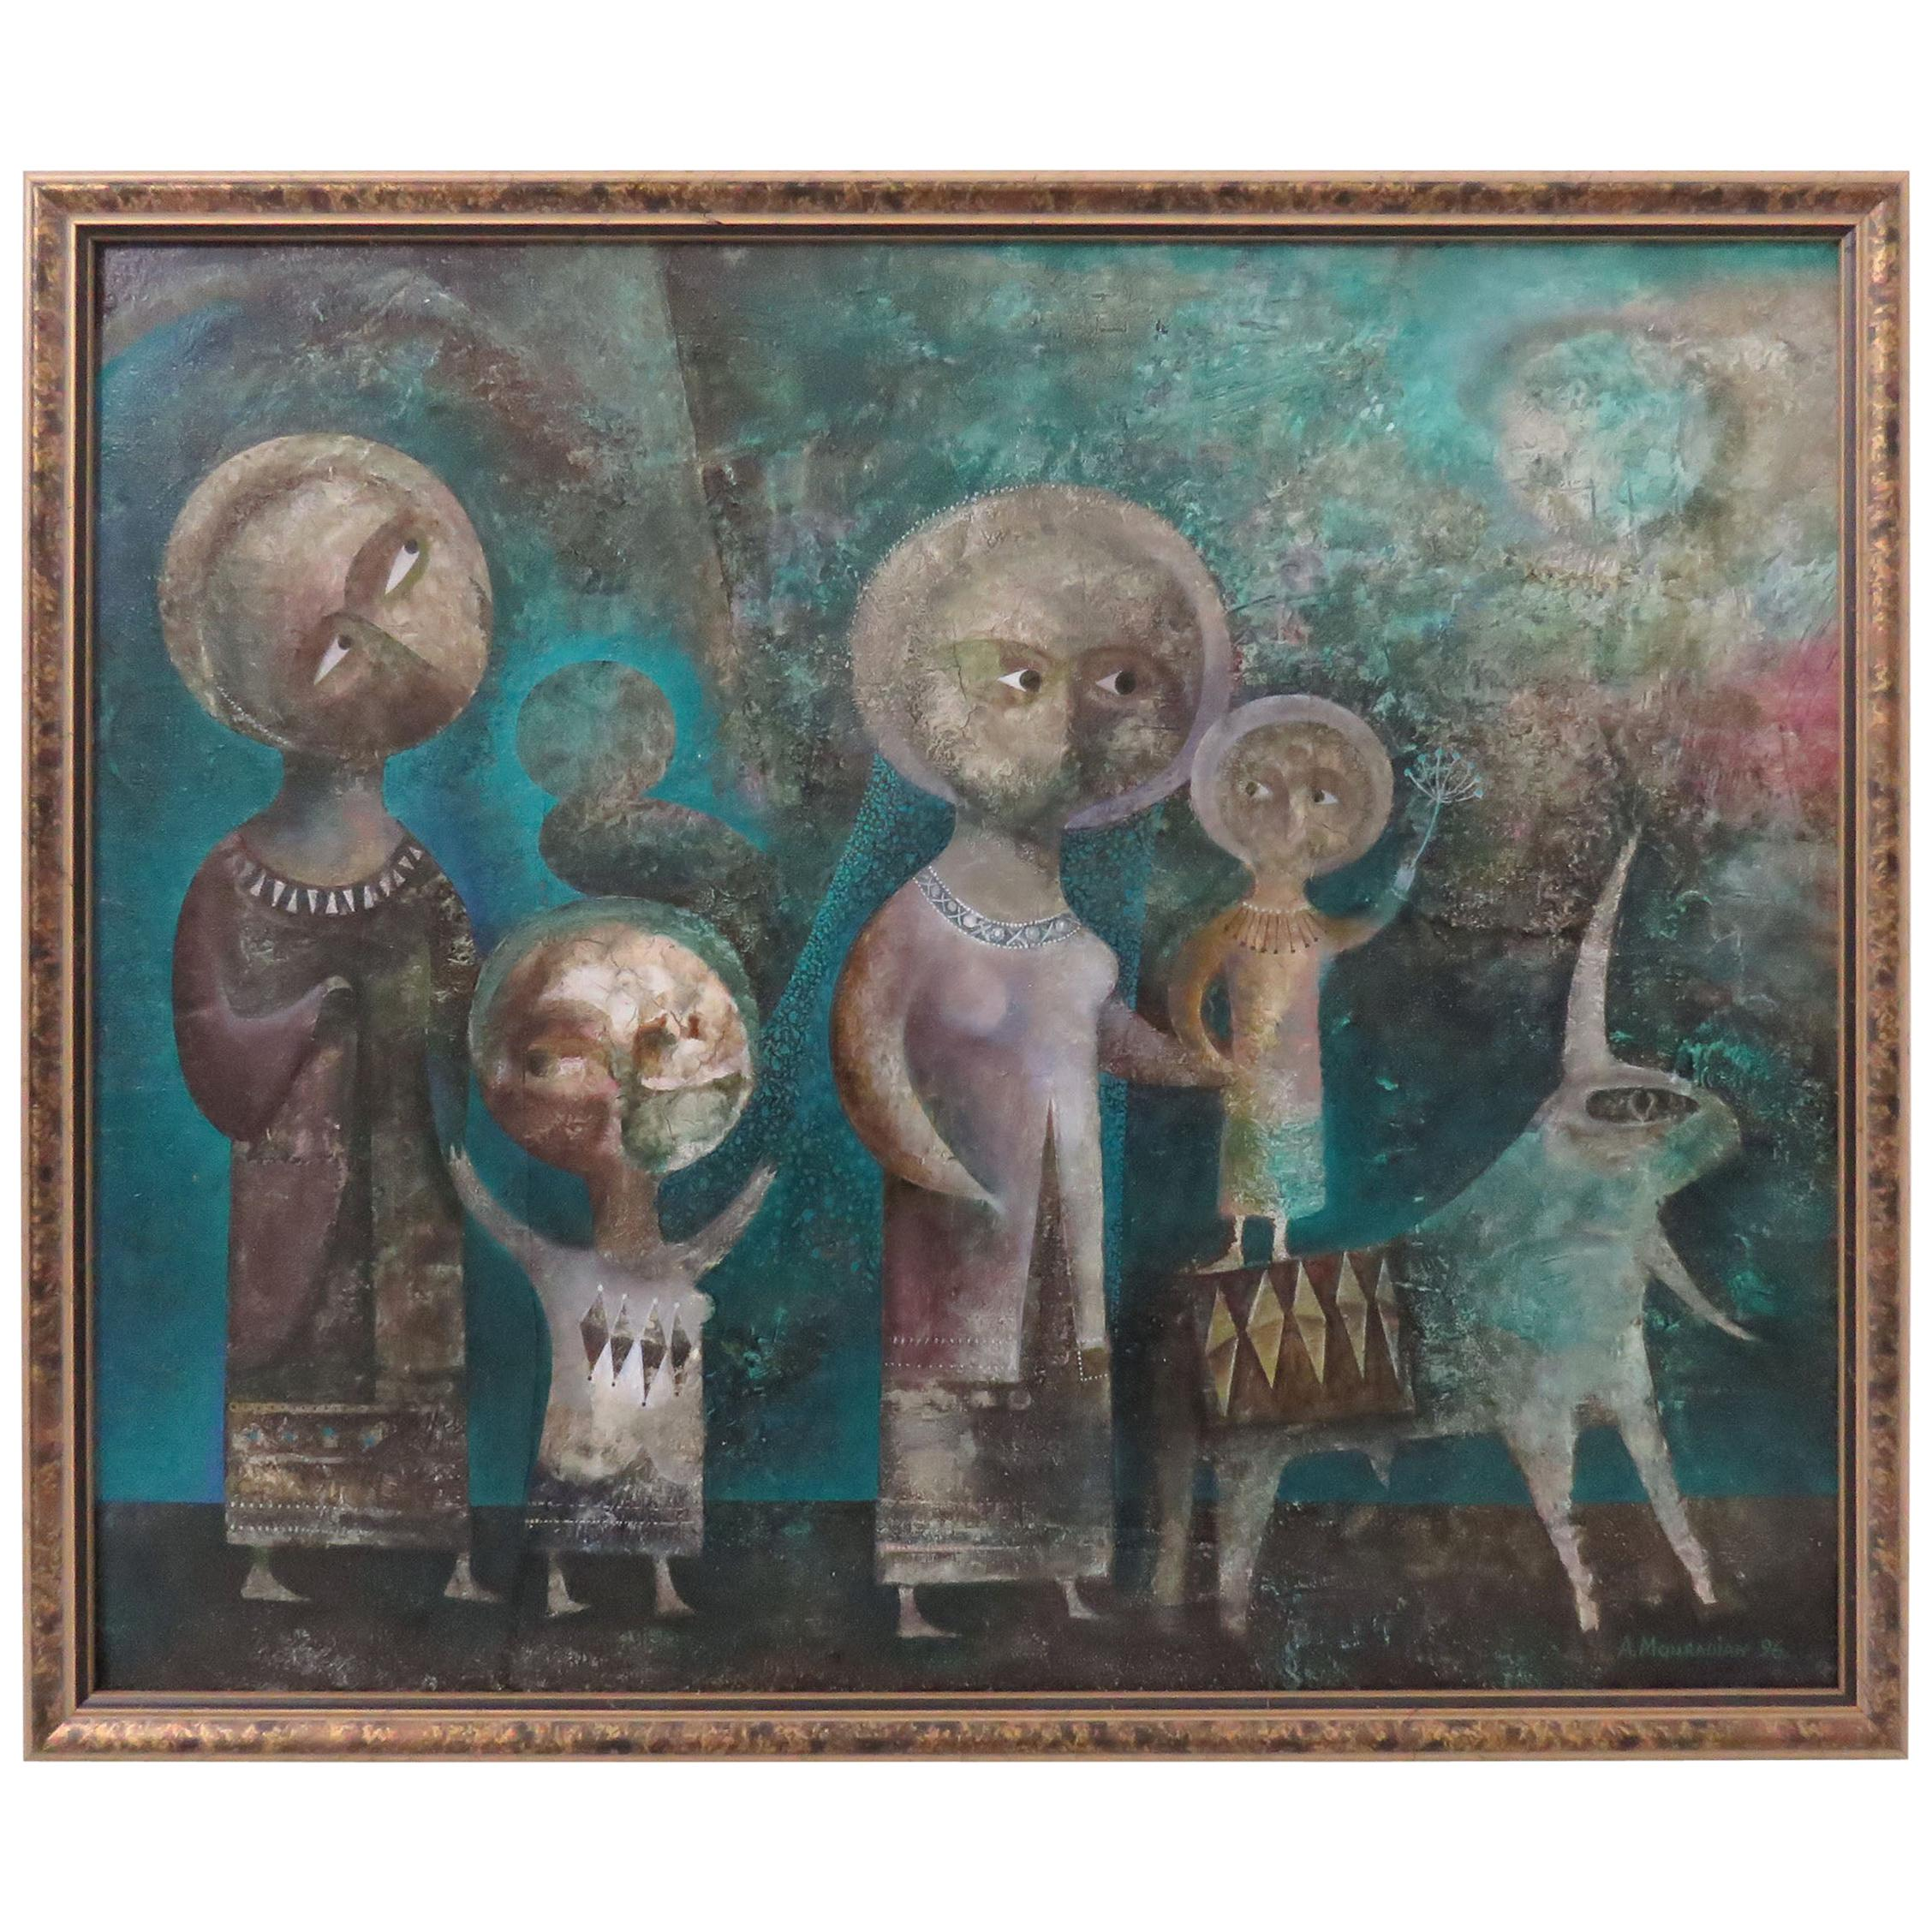 A Modernist Inspired Fable Painting by Armenian Artist A. Mouradian